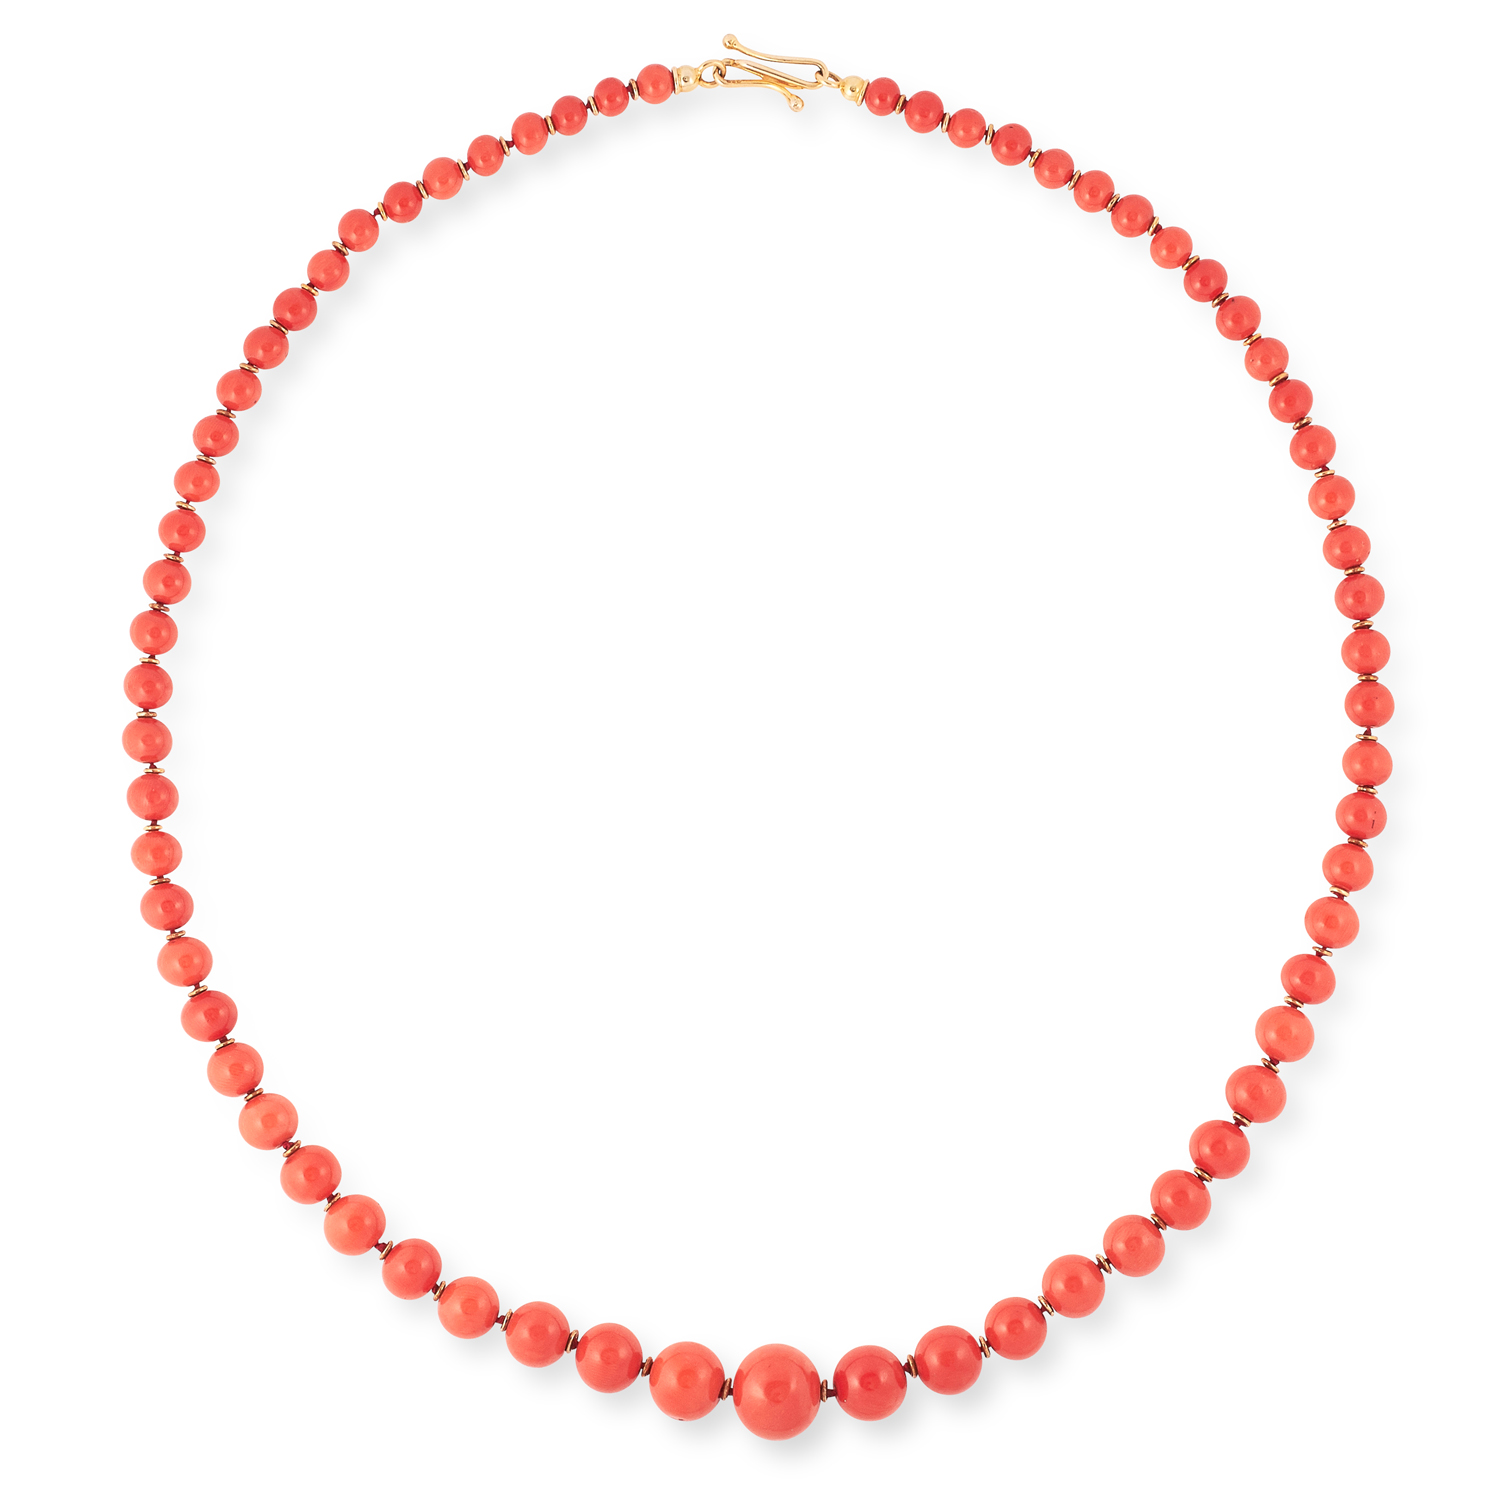 A CORAL AND DIAMOND NECKLACE comprising a single row of sixty-six graduated round coral beads